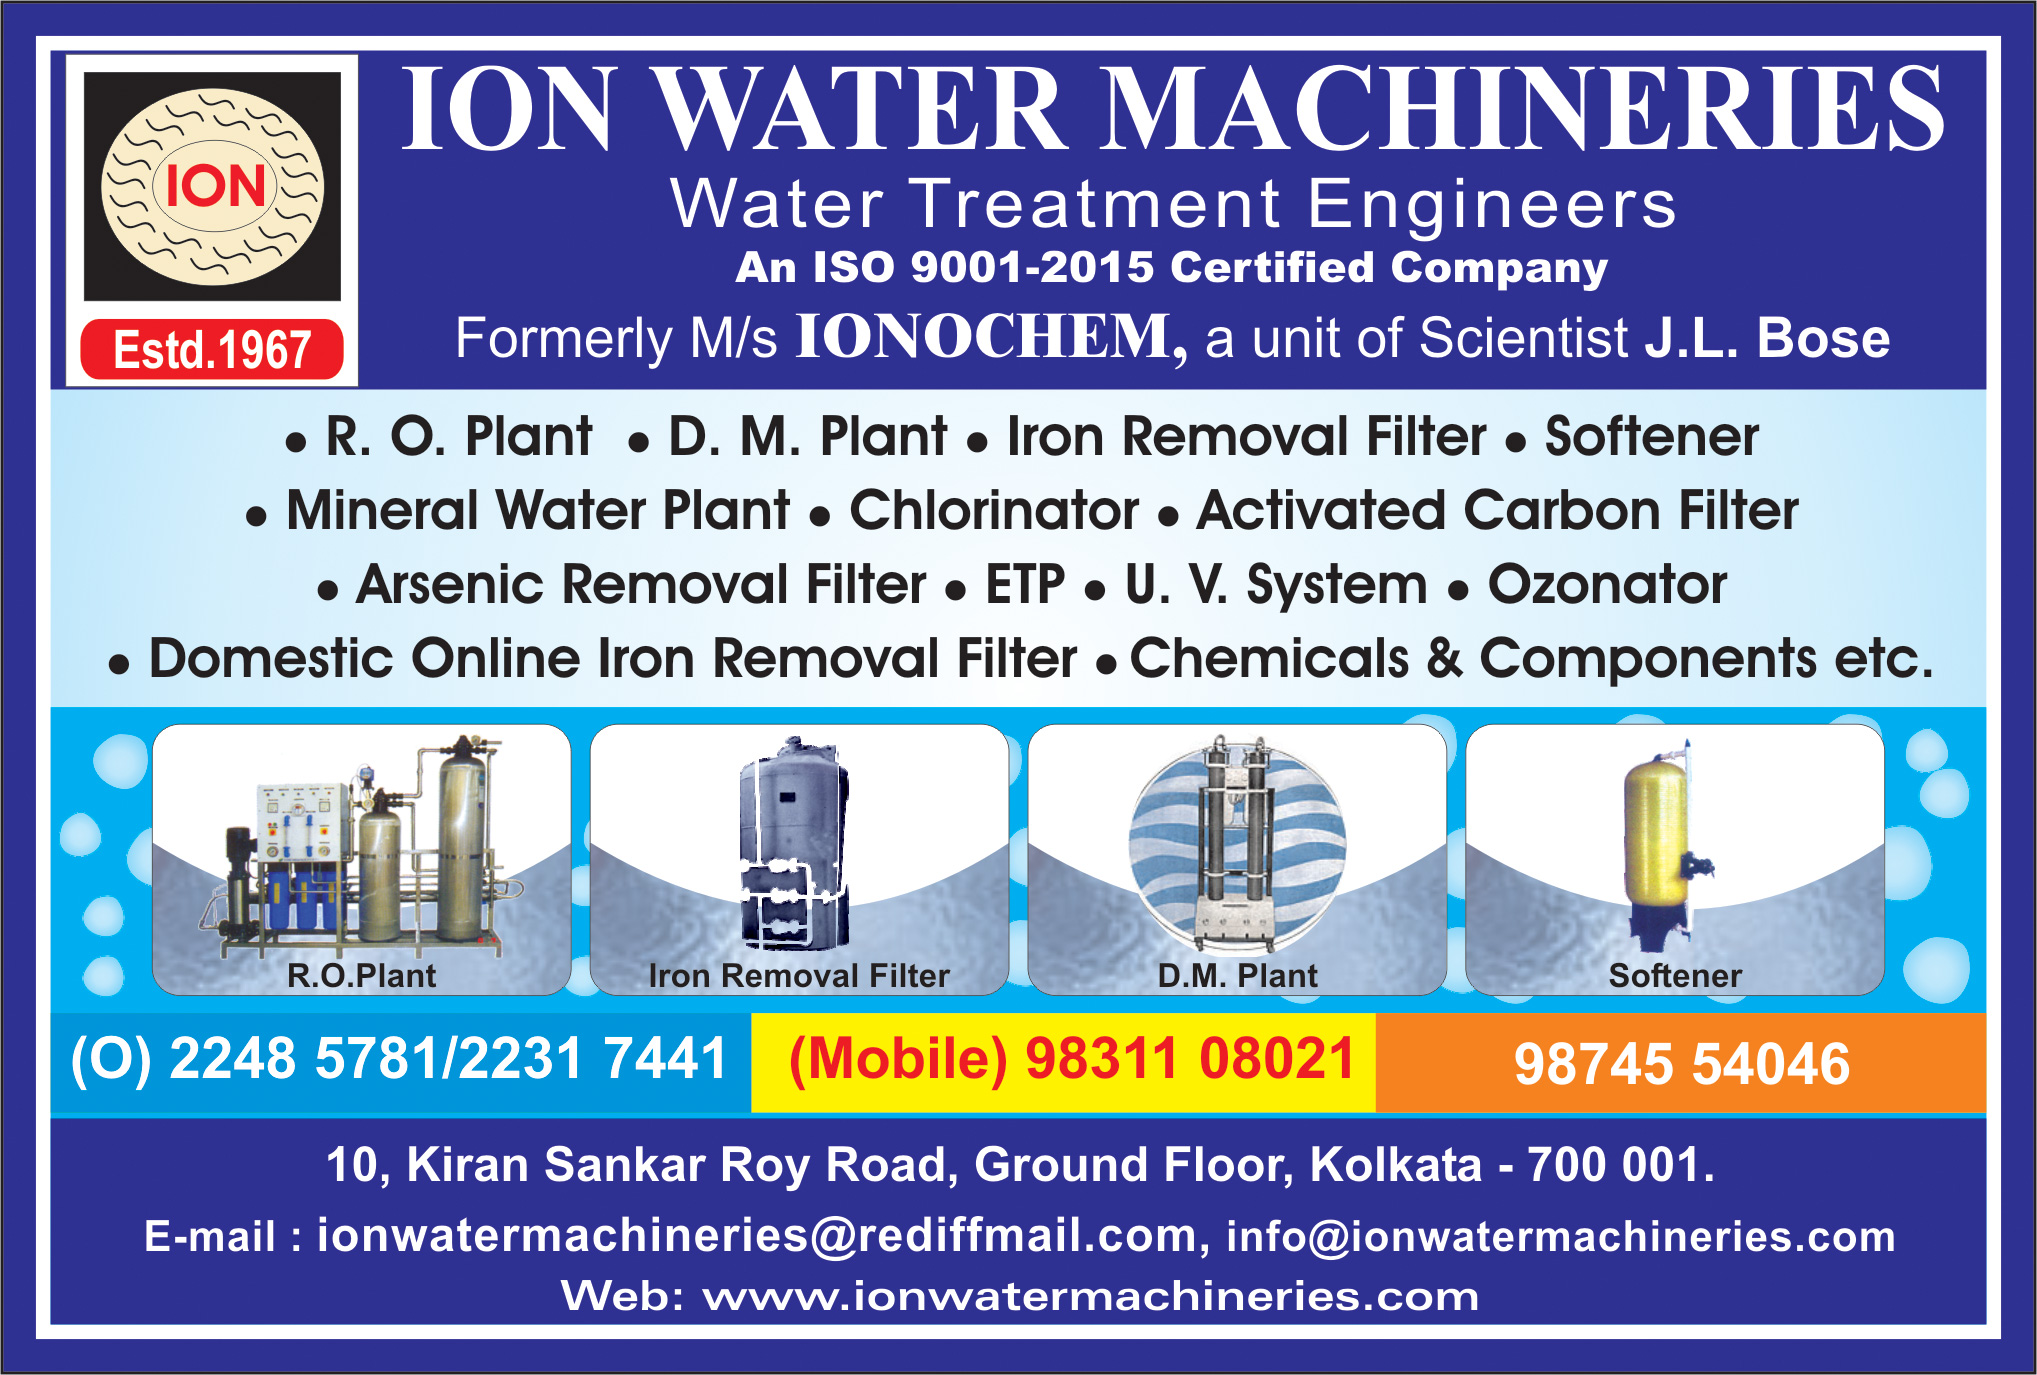 Water Treatment Equipment and Parts, ION WATER MACHINERIES, Kolkata,  Yellow Pages, Kolkata, West Bengal